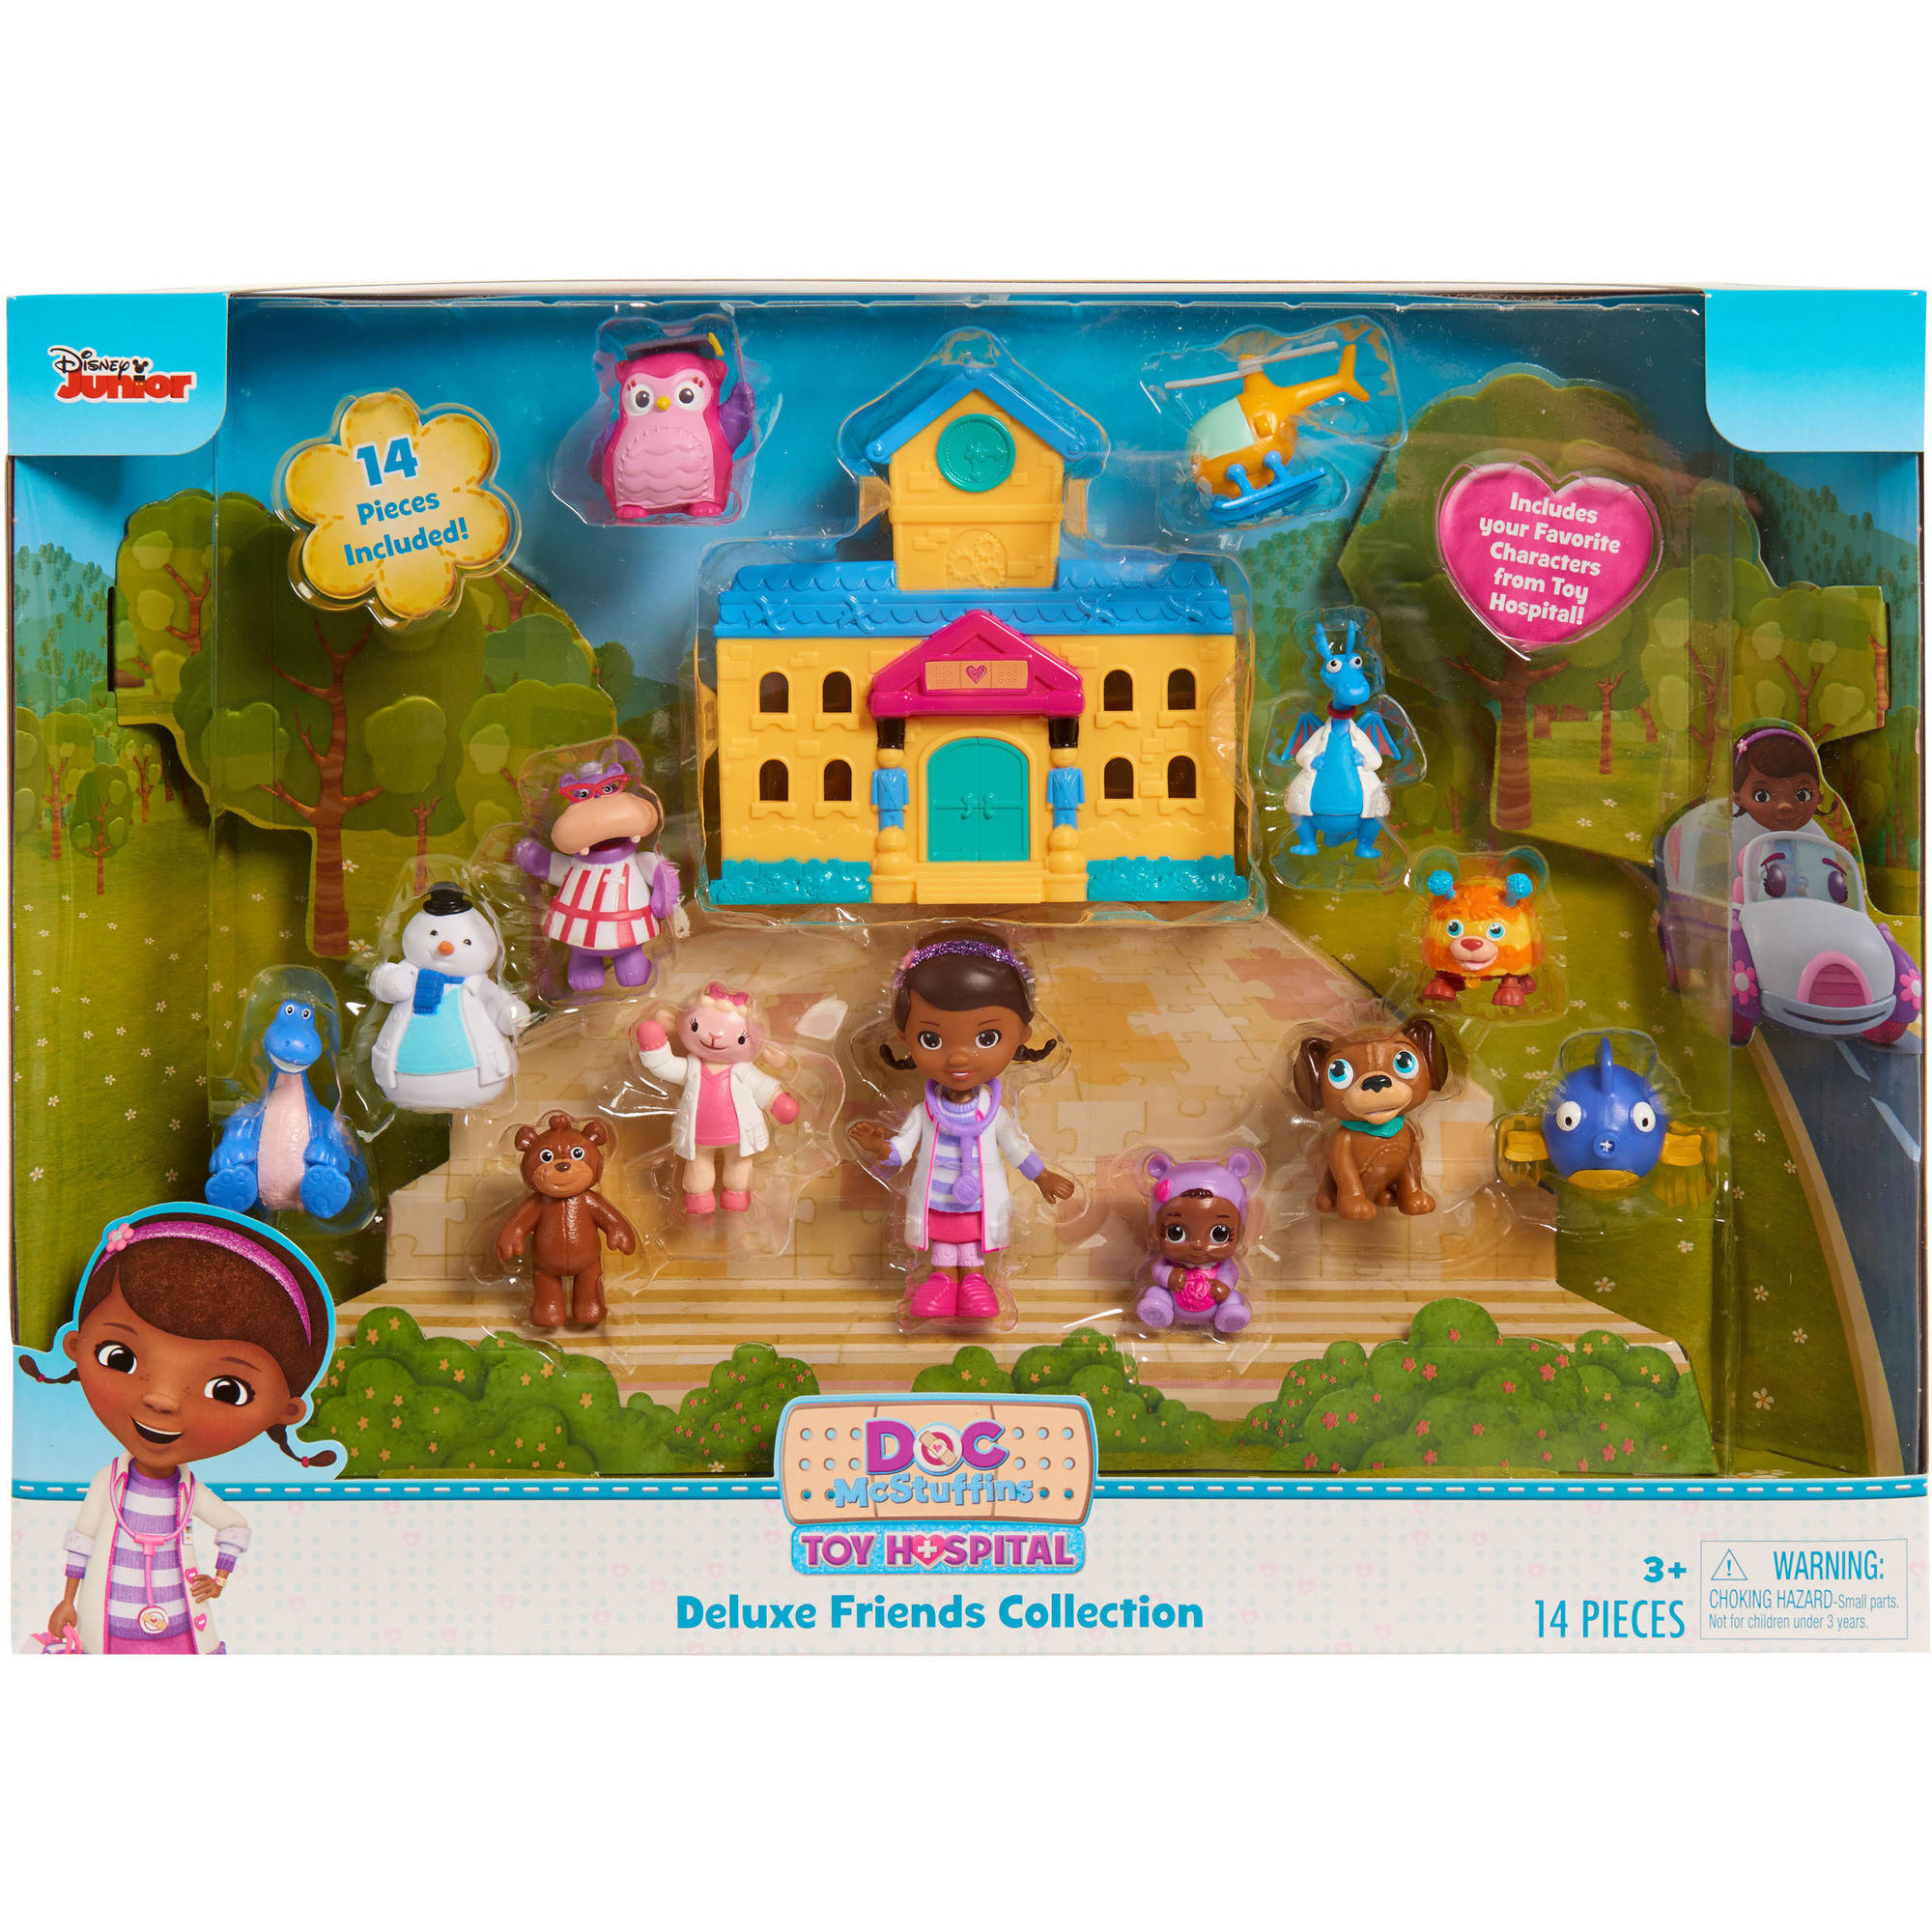 Disney Doc McStuffins Deluxe Friends Collection